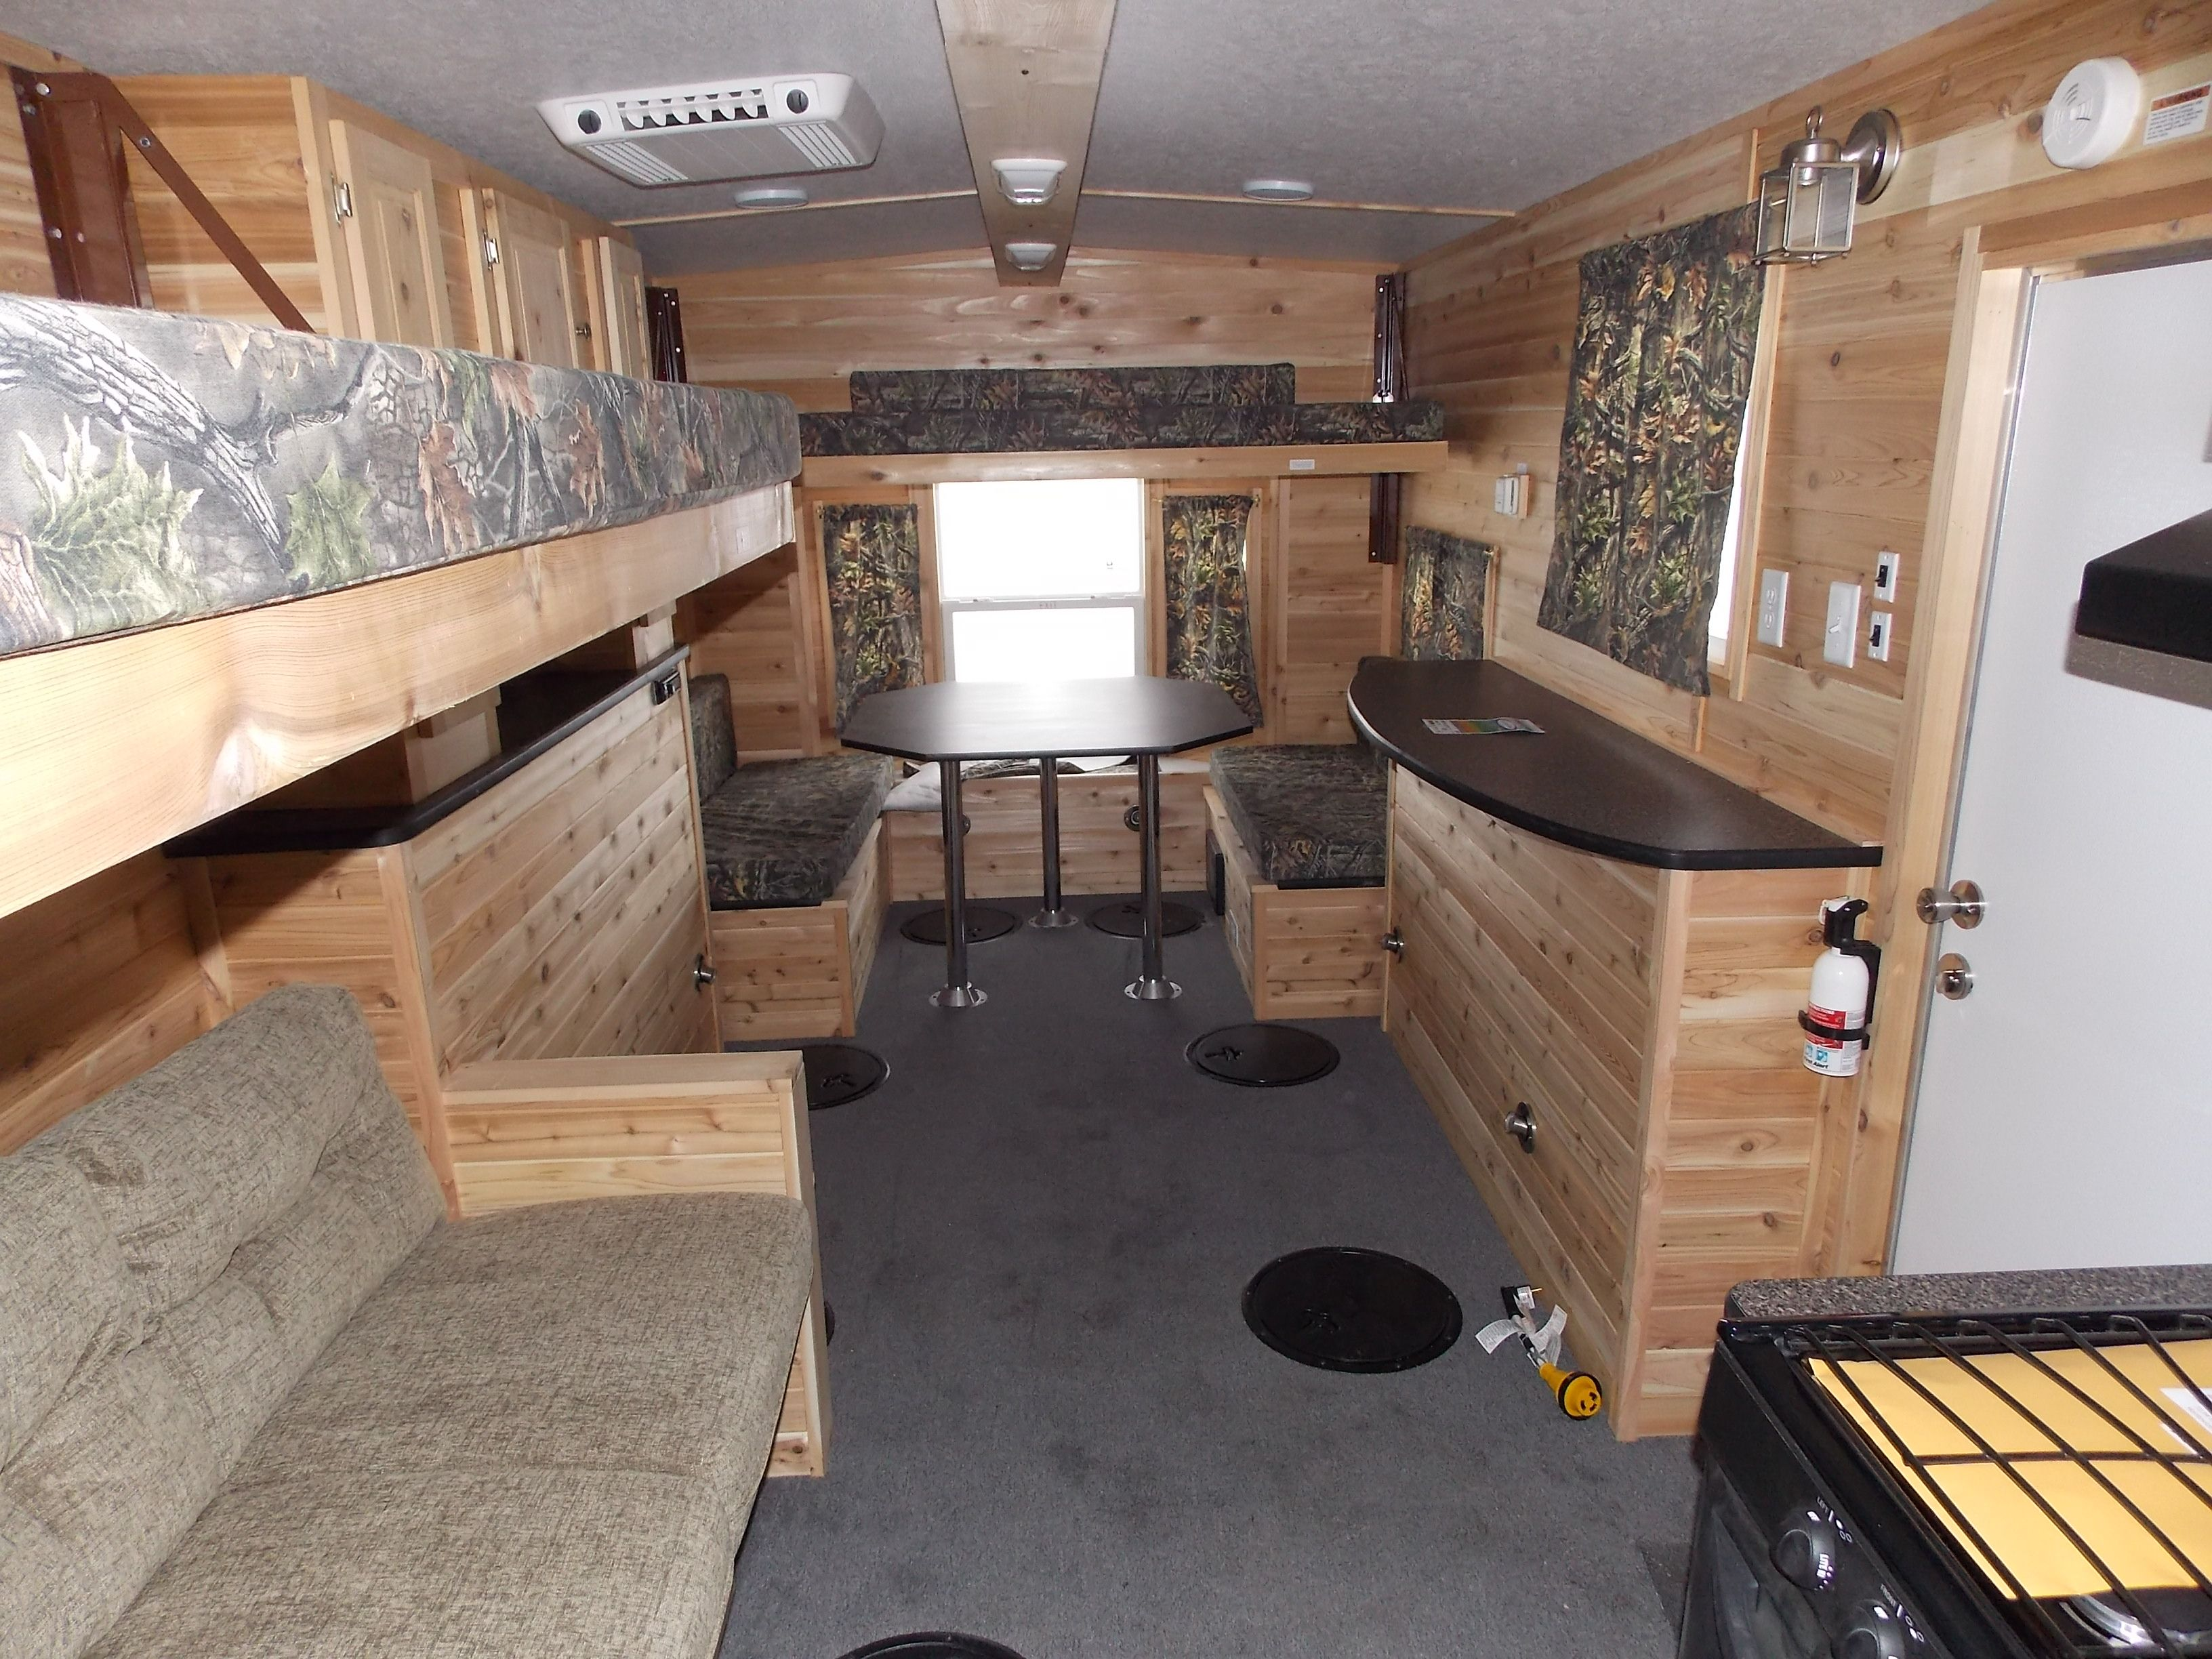 snowmobile trailer ice s - Google Search | Ice fishing ... on simple small house floor plans, 6x10 ice fishing house, morton building home floor plans, metal building homes floor plans,